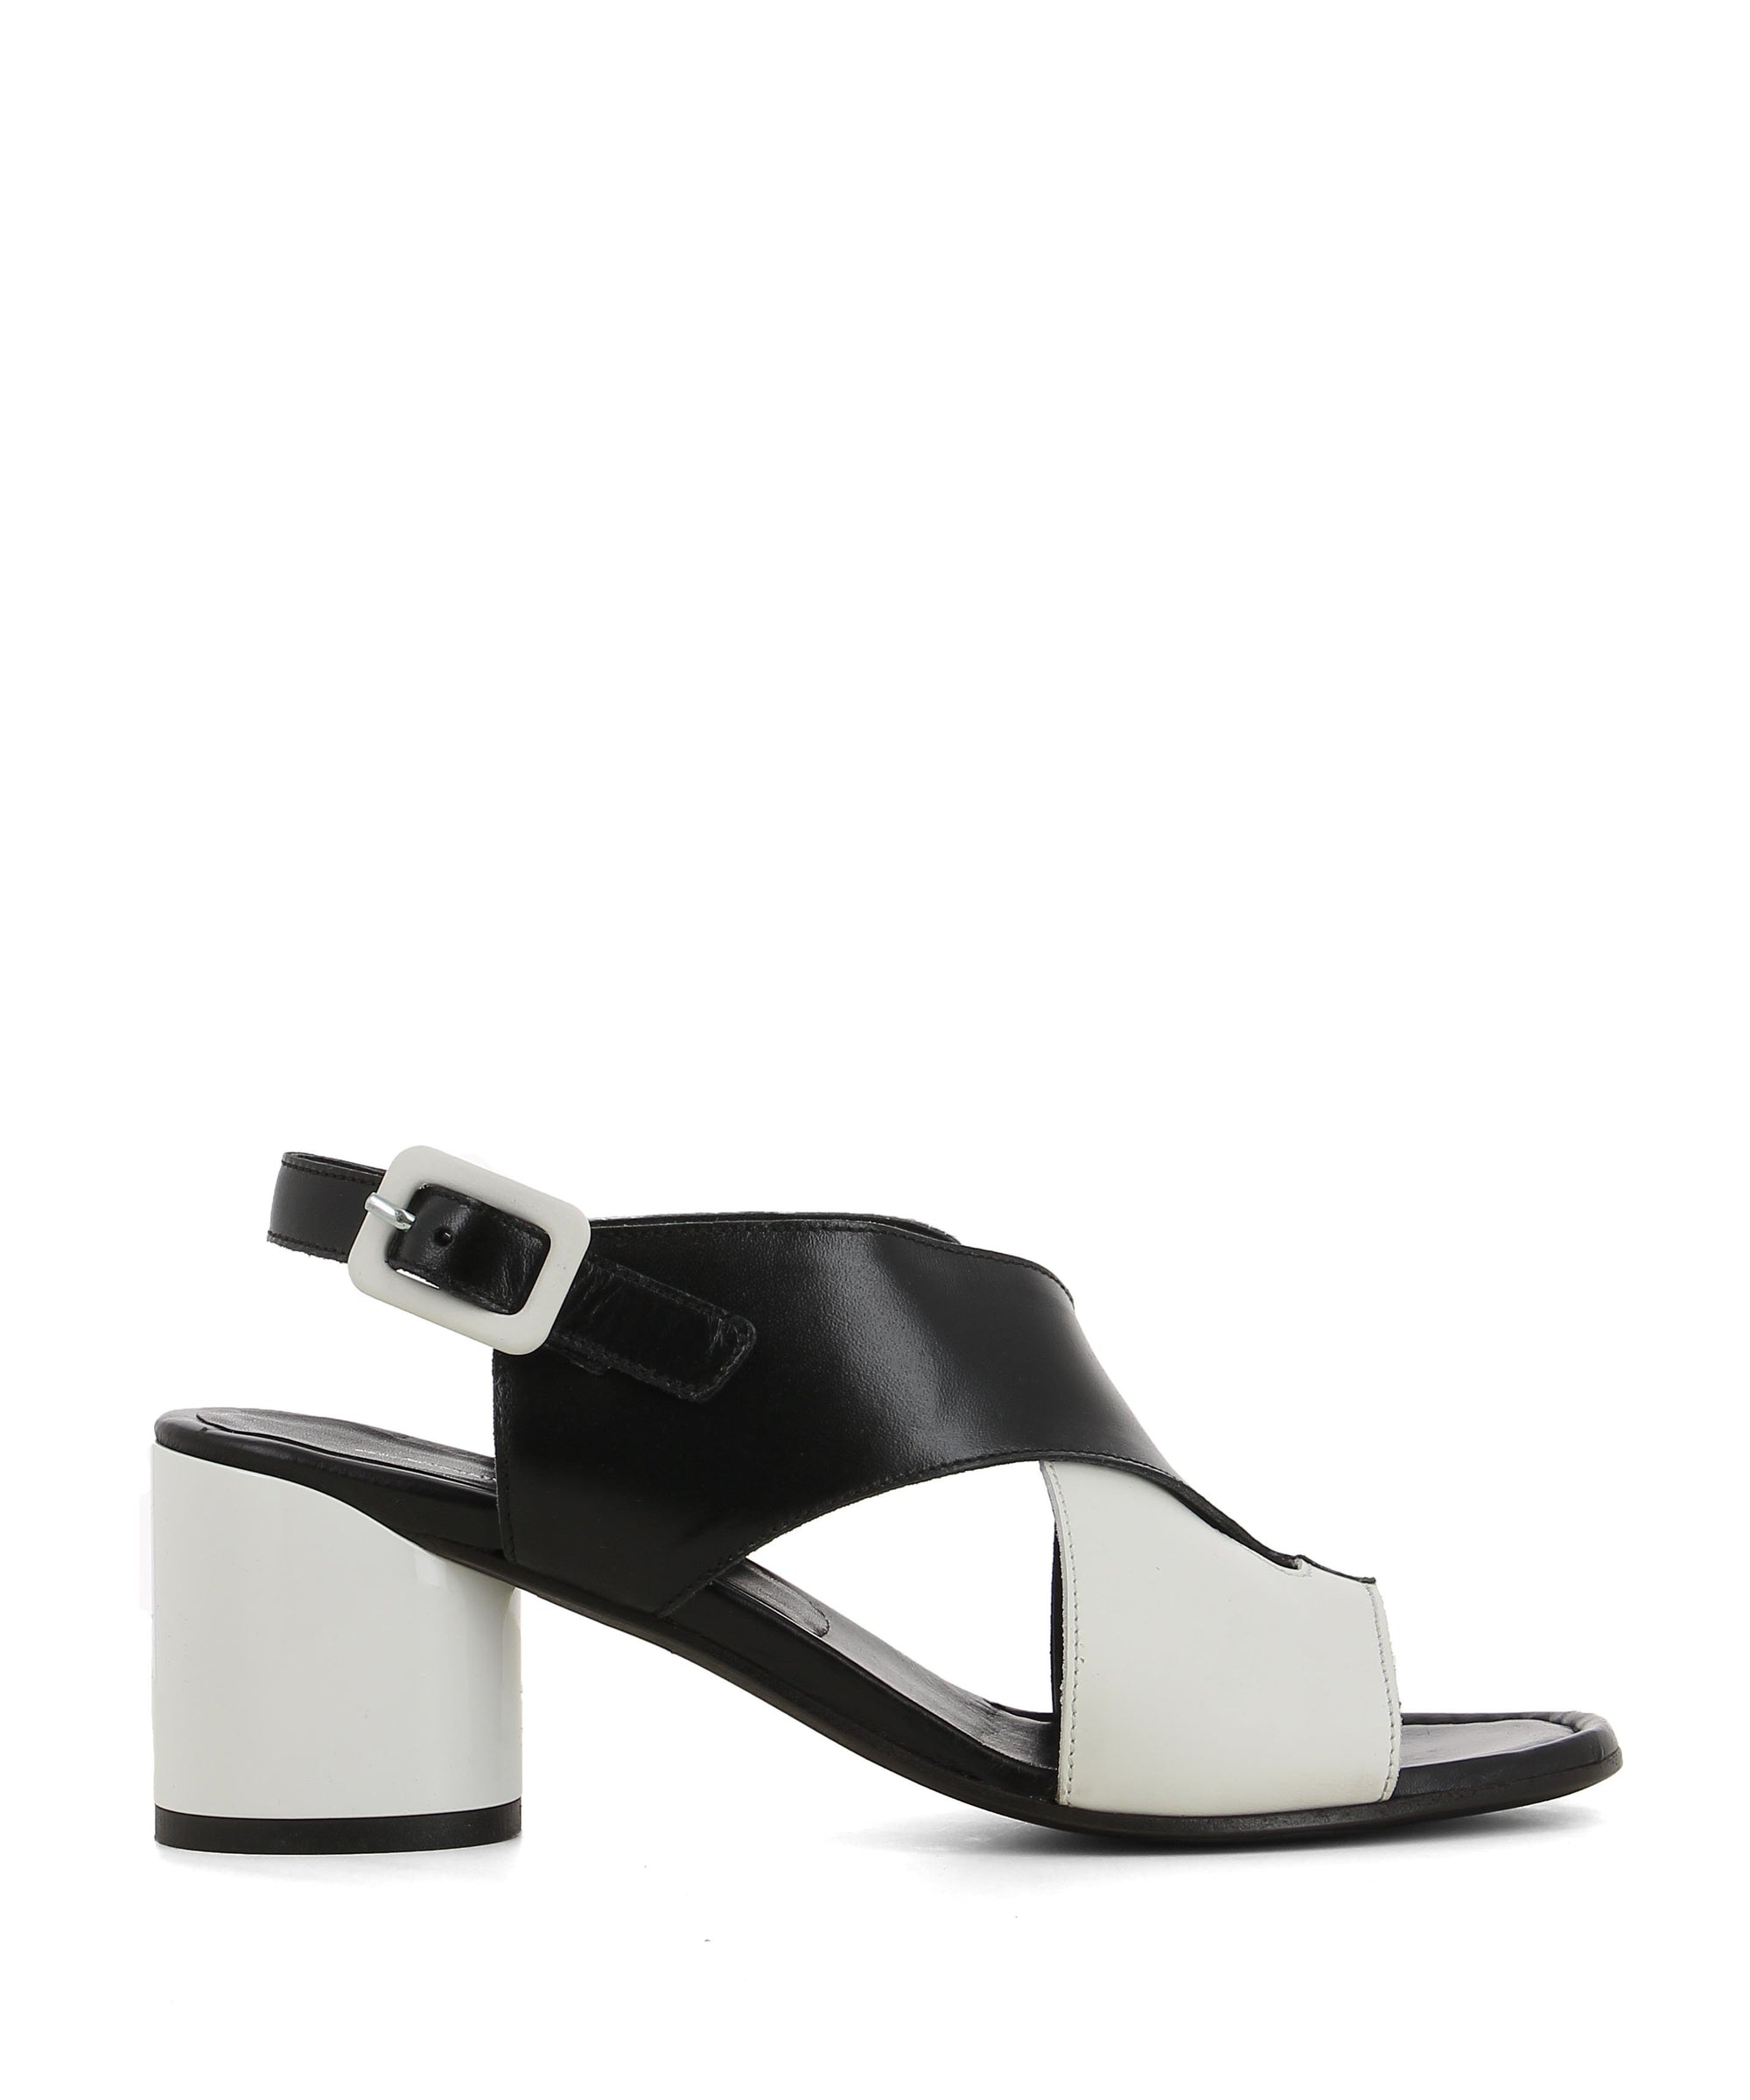 A black and white monochrome two tone leather sandal featuring a 7cm block heel, cross over upper and round toe. Made by Martini Osvaldo - this style runs true to size.